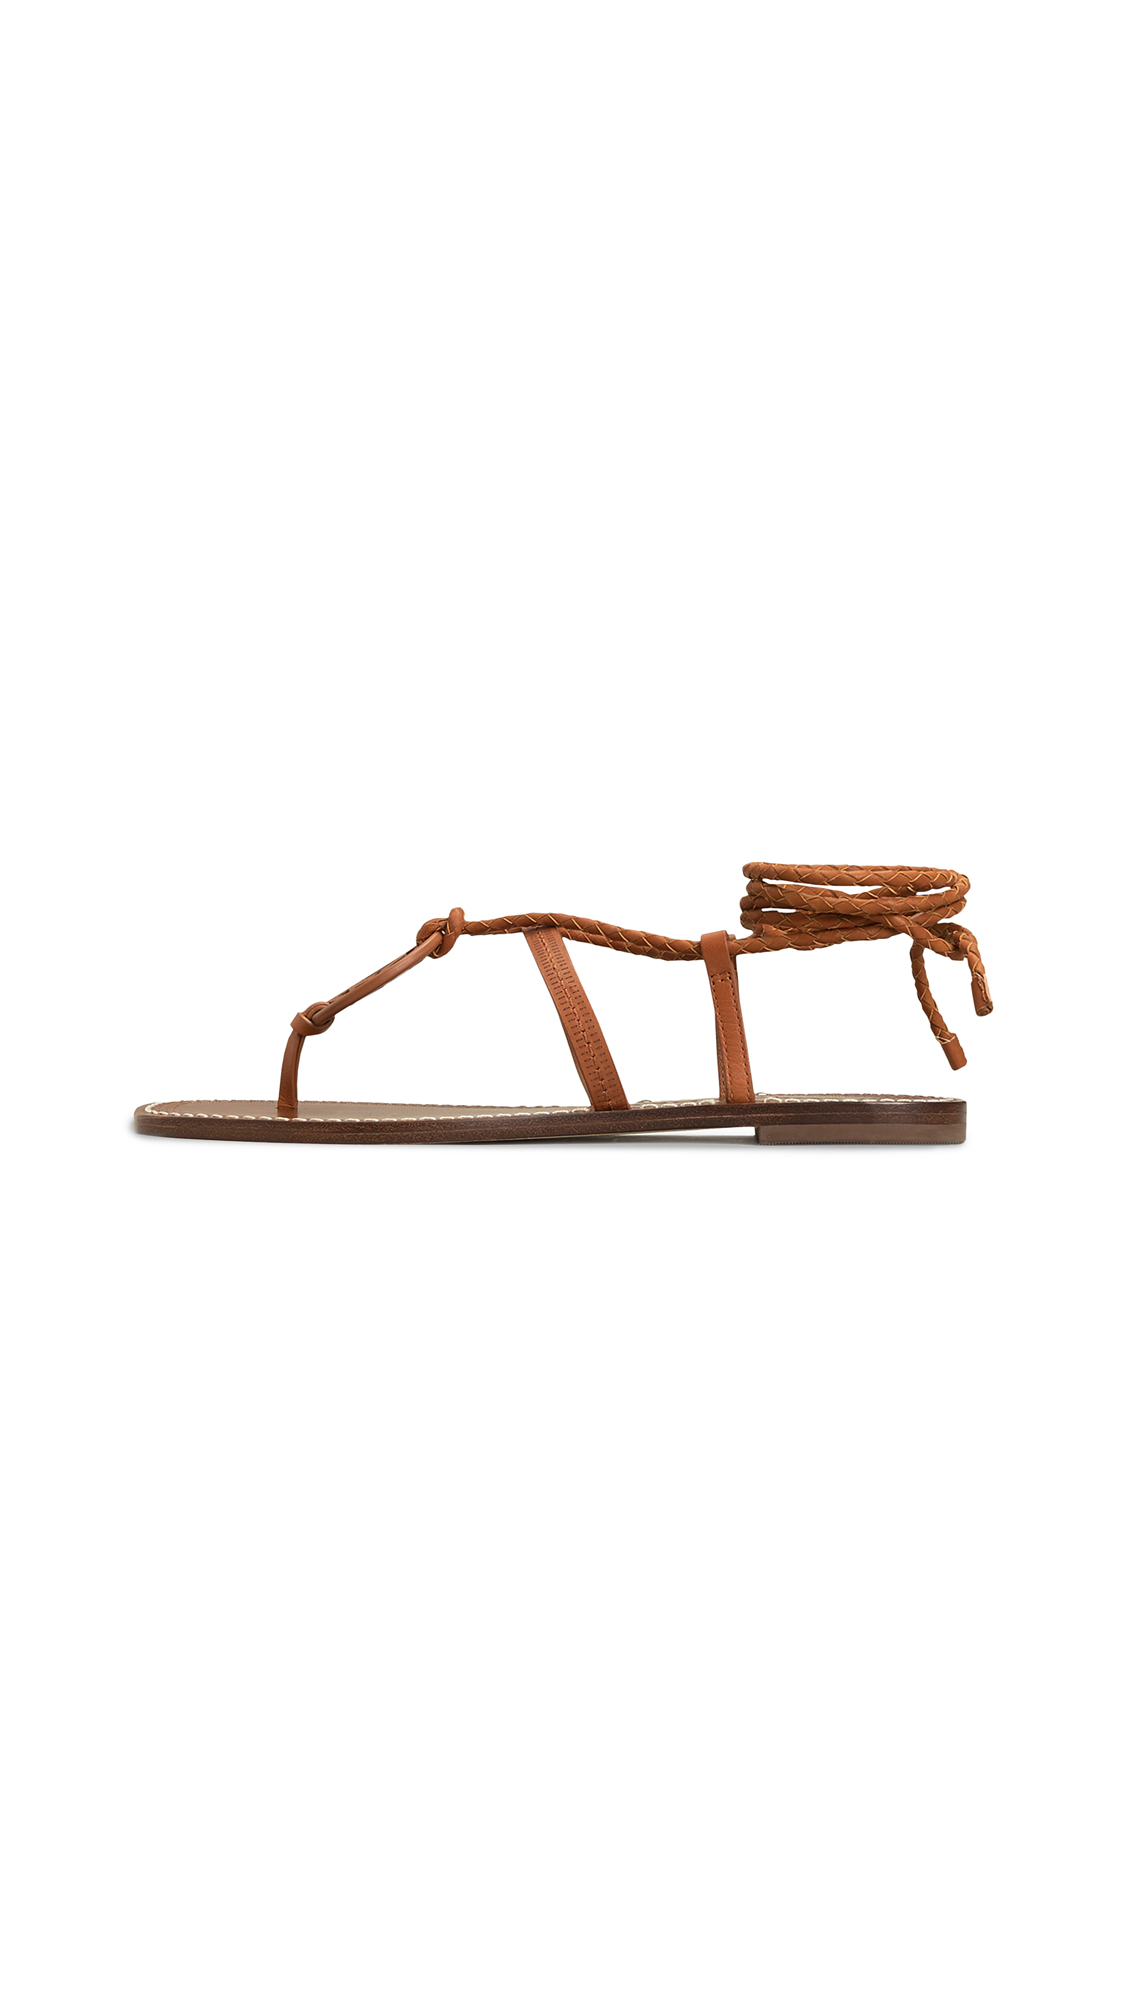 Buy Tory Burch Miller Braided Ankle-Wrap Sandals online, shop Tory Burch